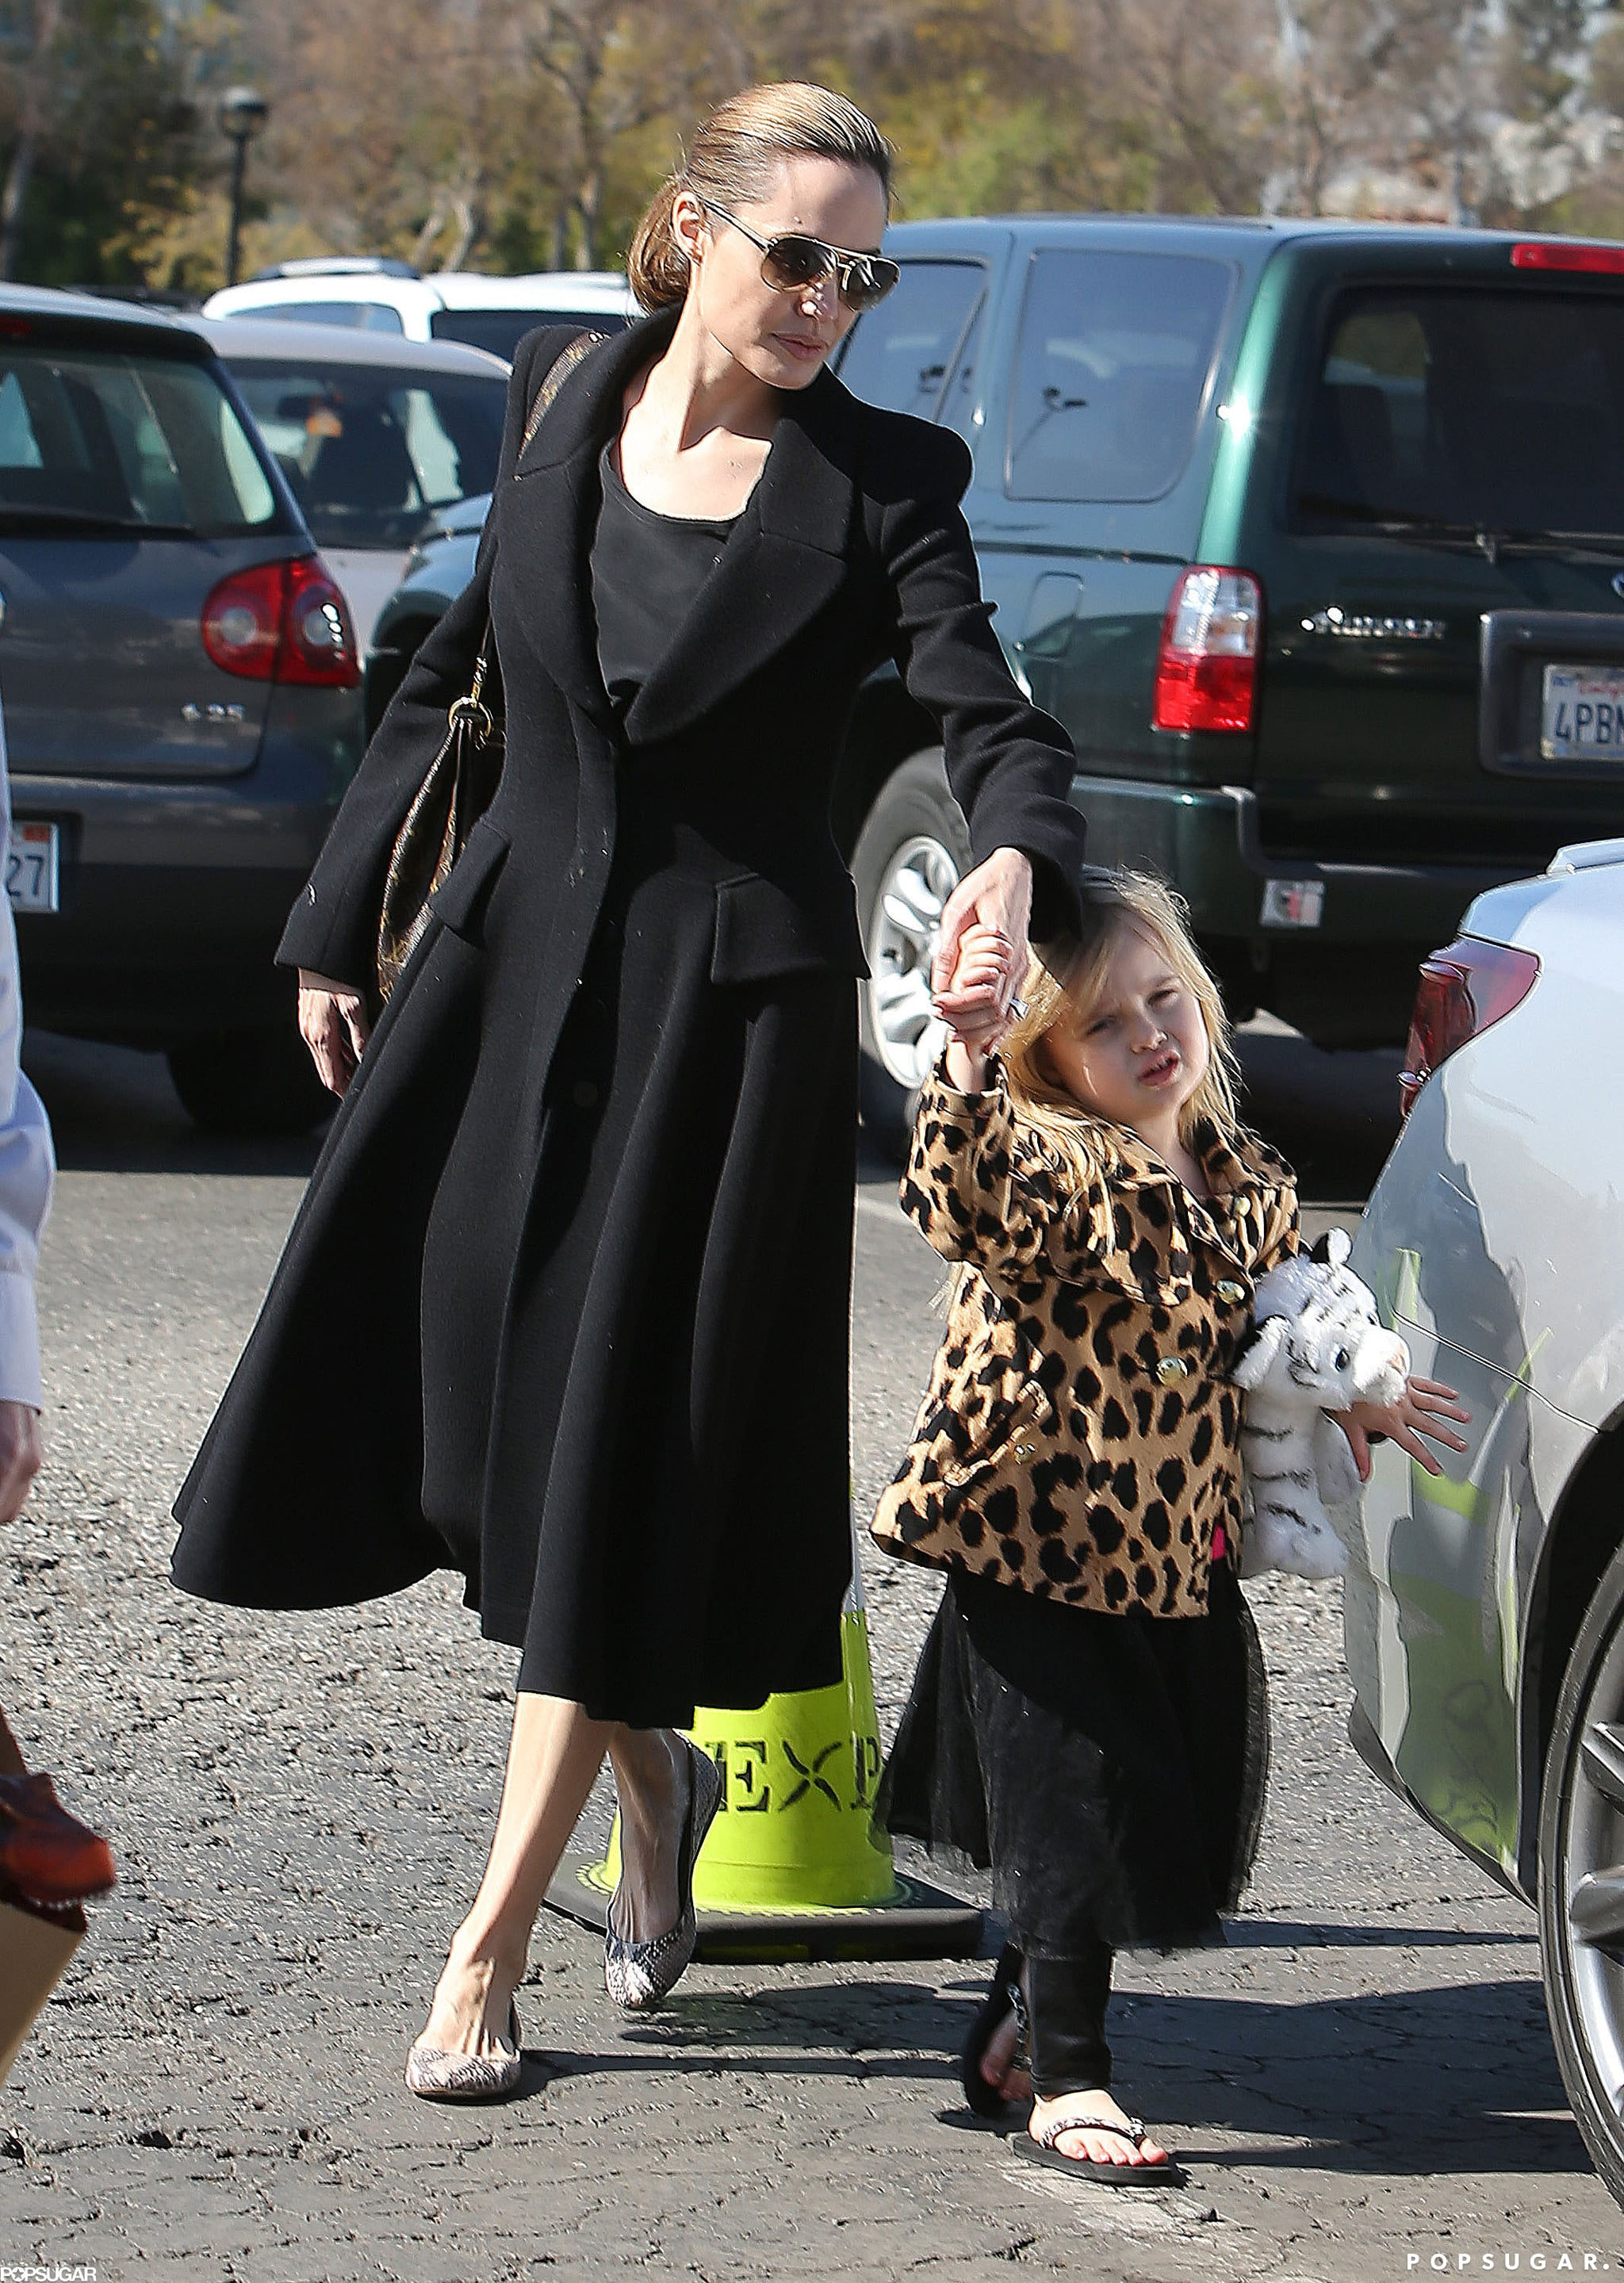 In February, Angelina Jolie held Vivienne Jolie-Pitt's hand for a Valentine's Day date to the Natural History Museum in LA.